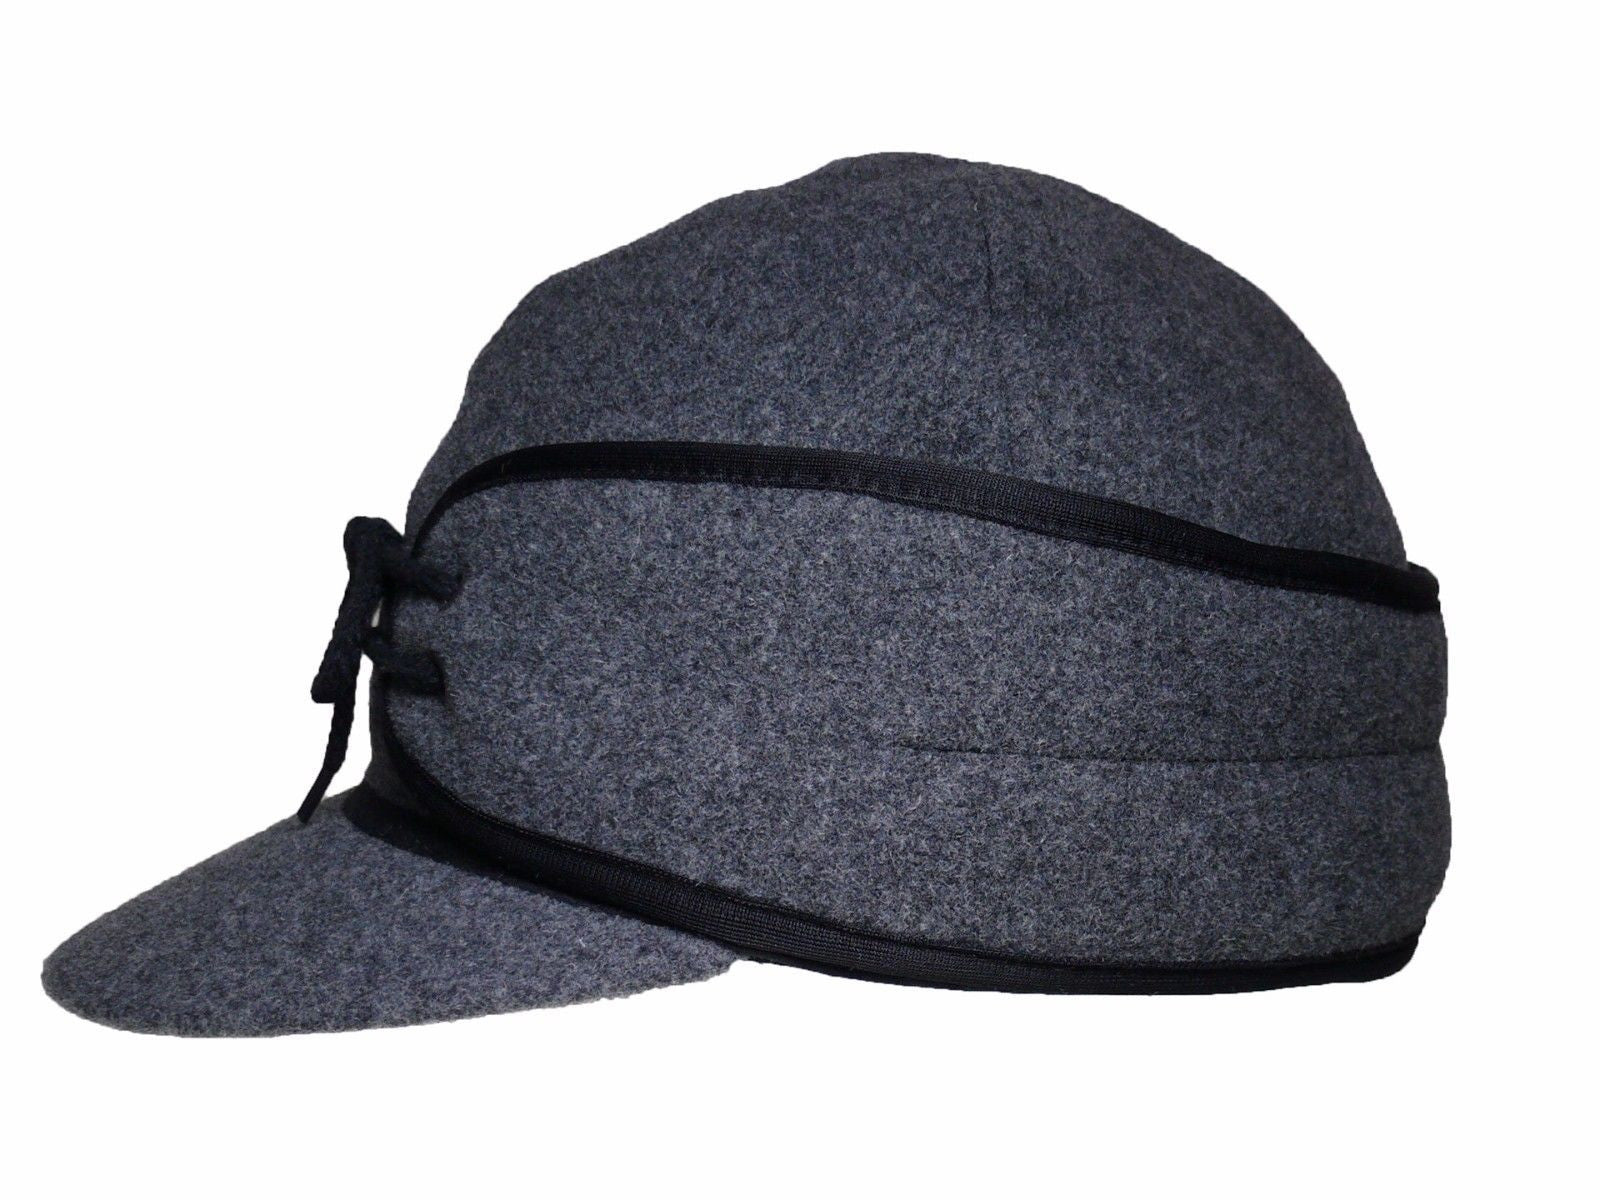 ... Winter Wool Cap Fold Down Ear Flaps Wyoming Traders side detail 2 ... 8f249c38a04